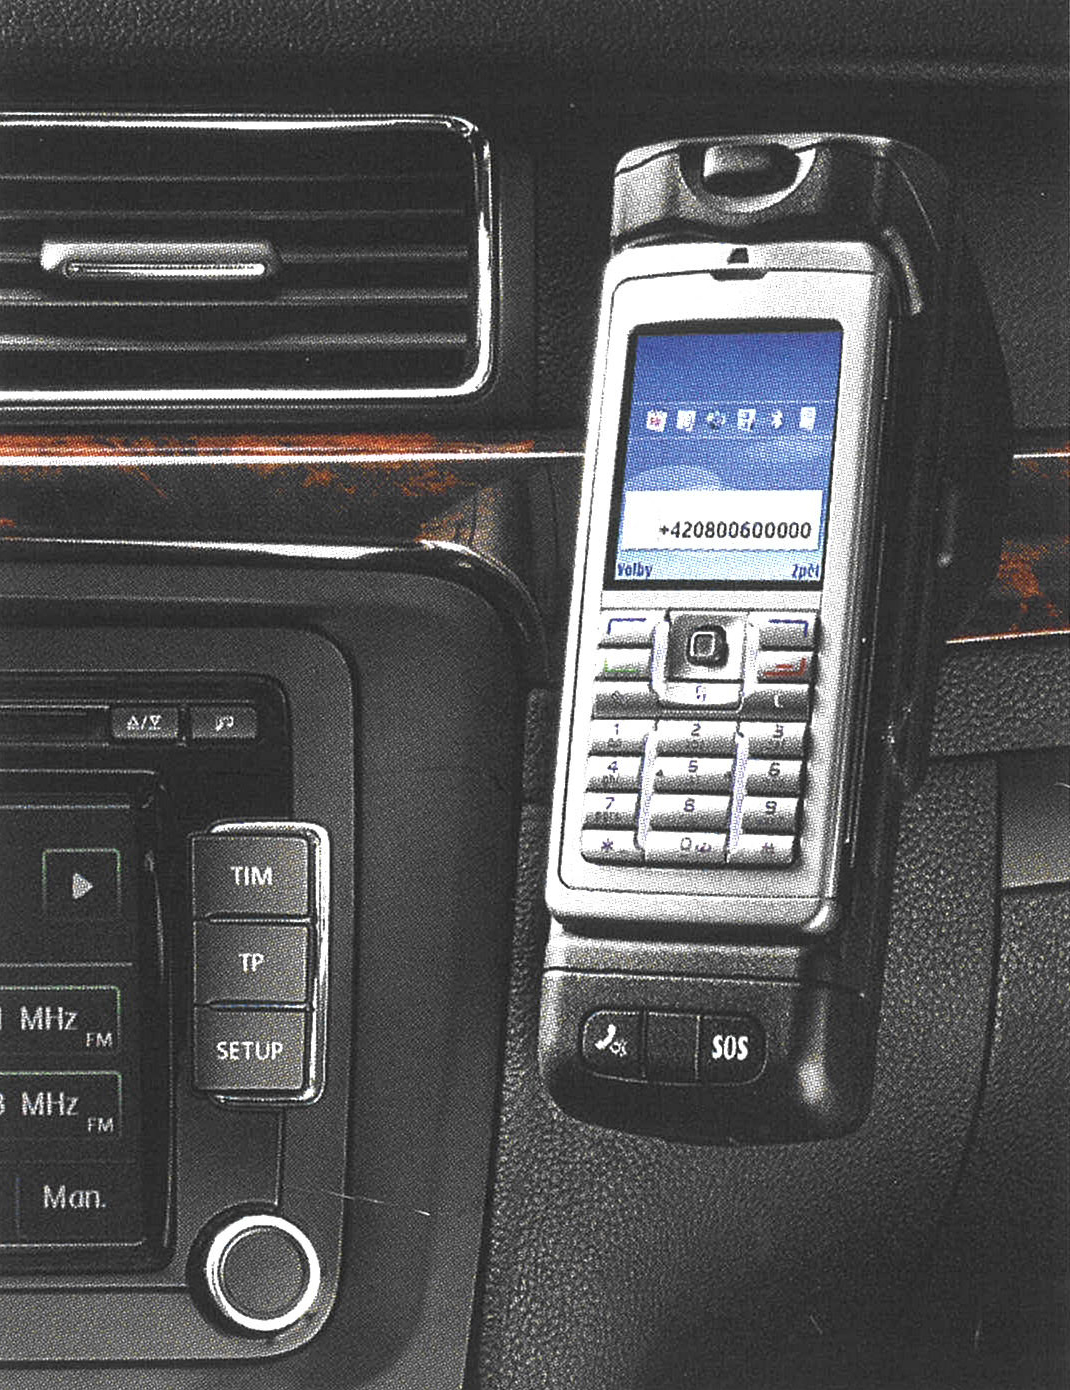 Bluetooth Audiostreaming Music From A Mobile Skoda Storyboard